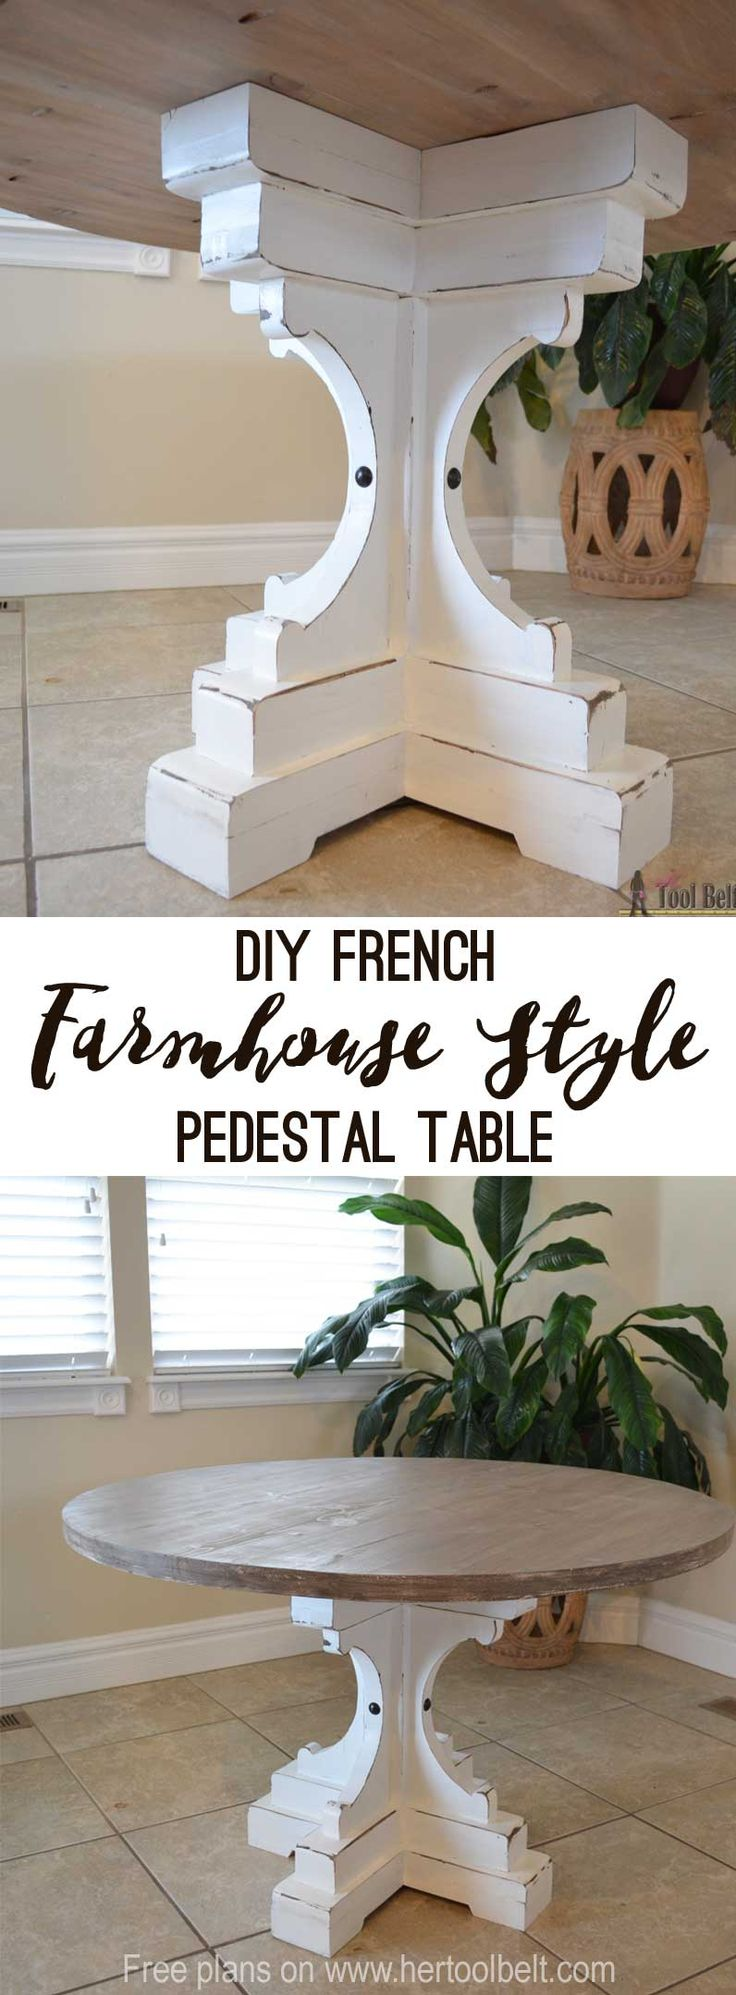 25 best french country tables ideas on pinterest french country farmhouse style round pedestal table small farmhouse tablefrench country